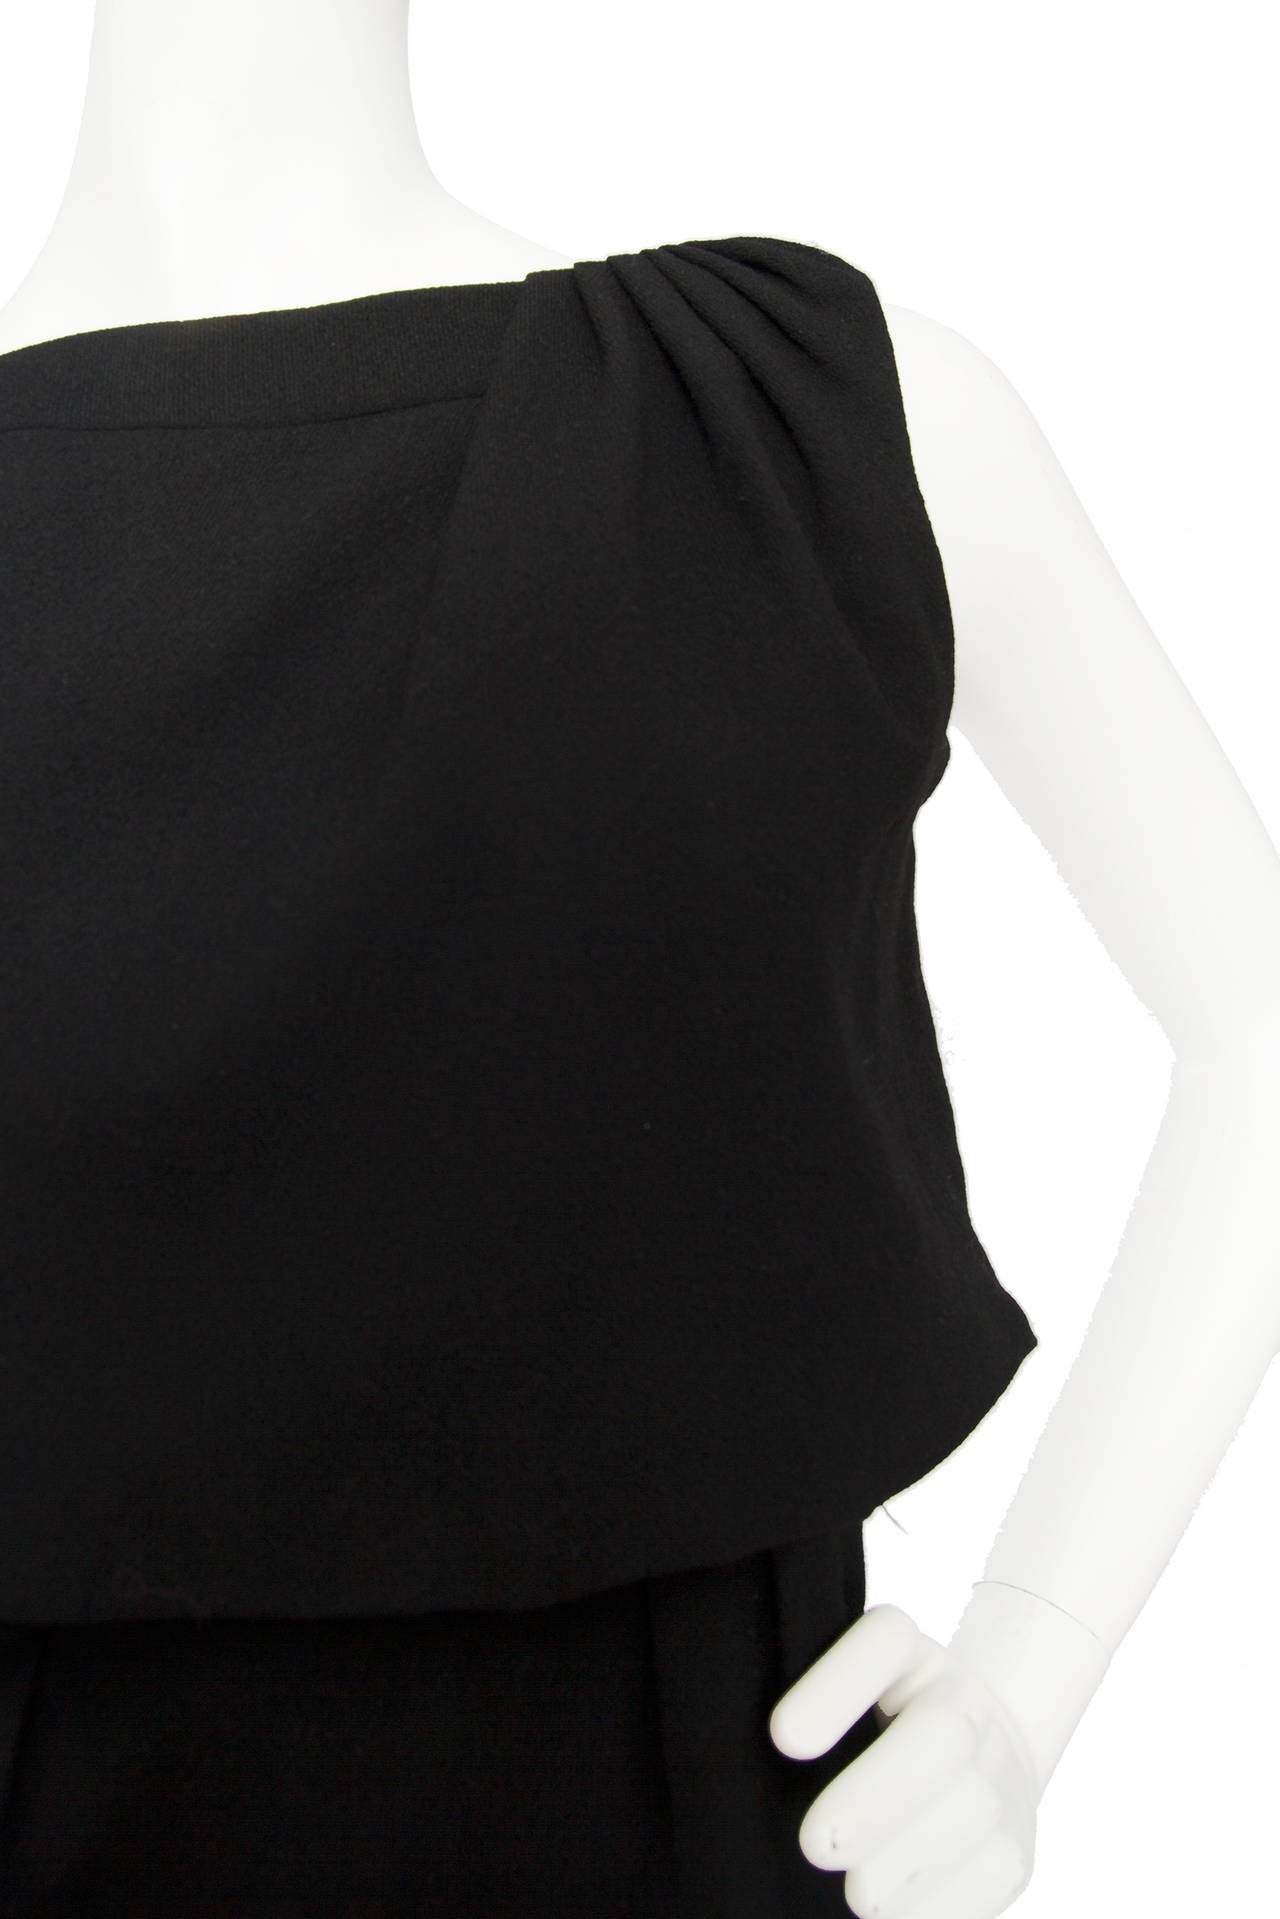 1960s Pierre Balmain Little Black Dress 6